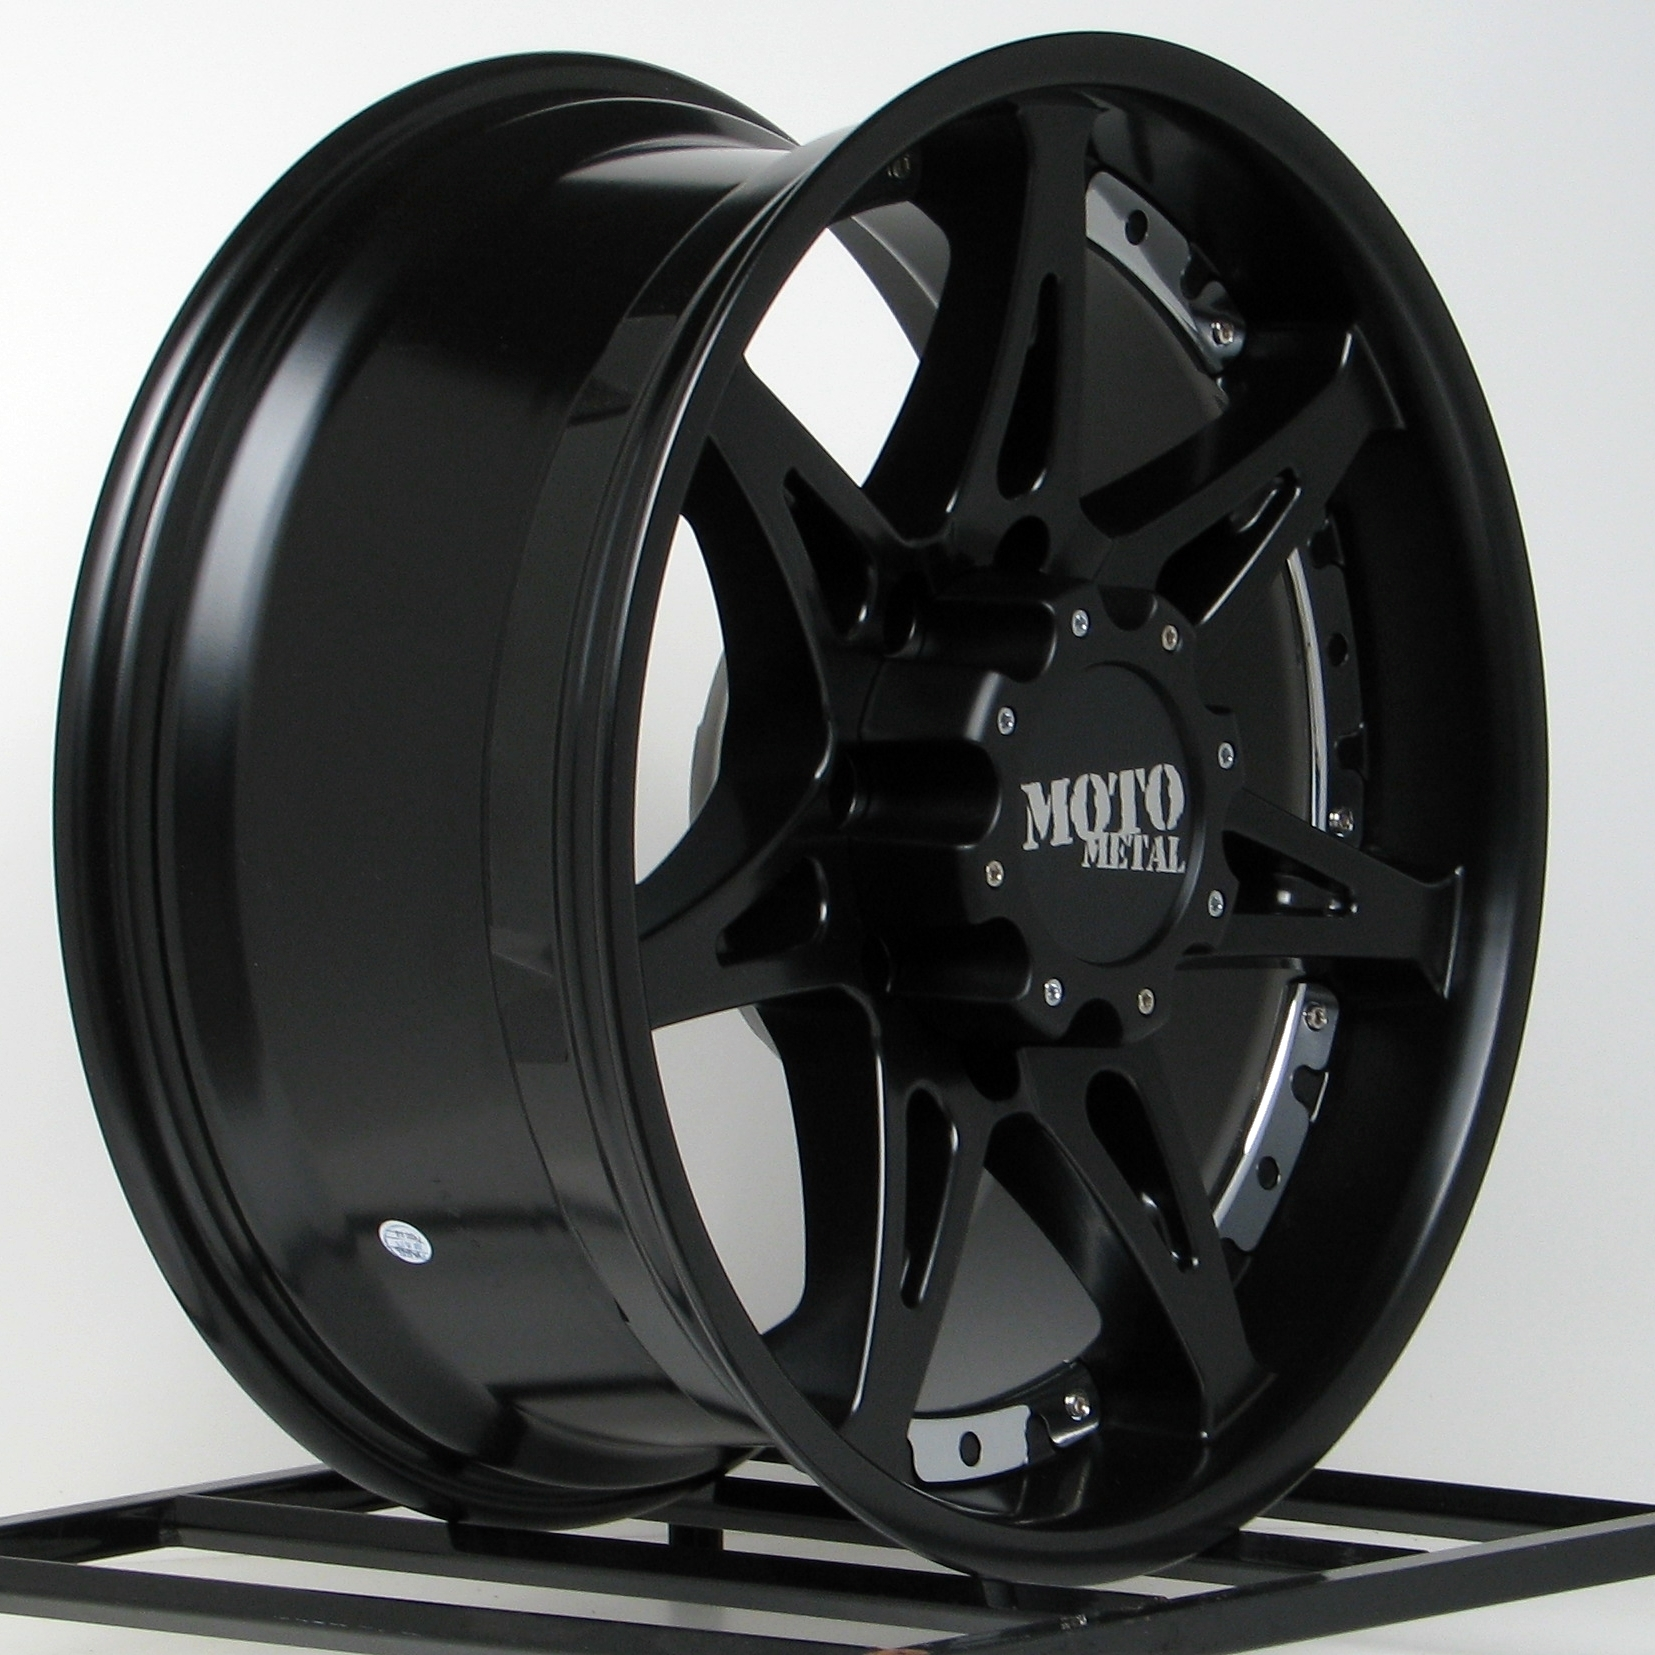 18 inch black wheels rims lifted chevy silverado 1500 tahoe truck 6 lug 18x10 ebay. Black Bedroom Furniture Sets. Home Design Ideas